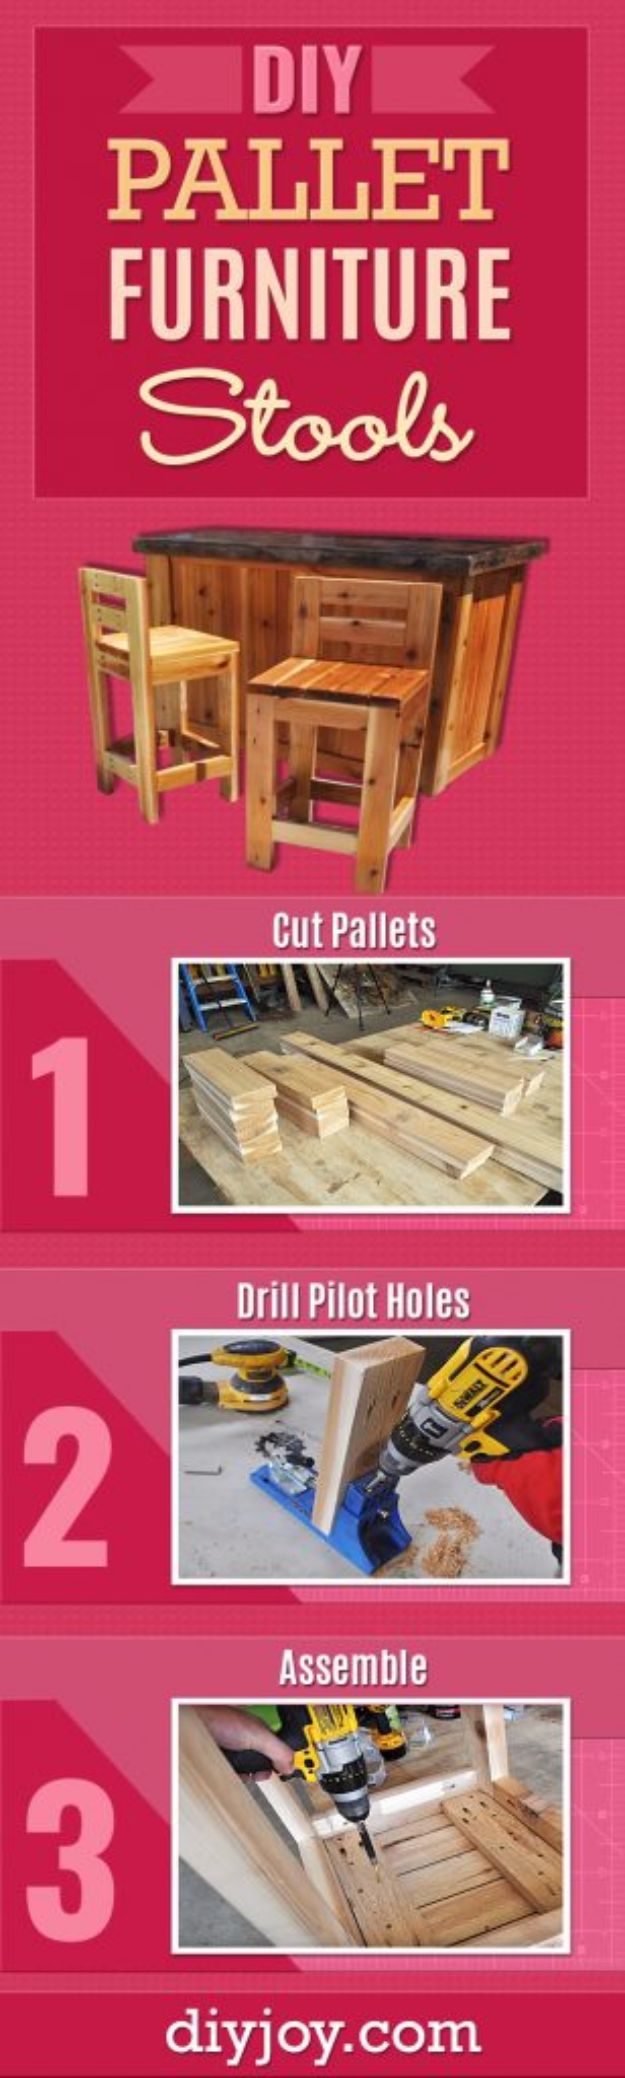 31 diy barstools you need to make for your home diy barstools diy wooden stools easy and cheap ideas for seating and creative home solutioingenieria Choice Image